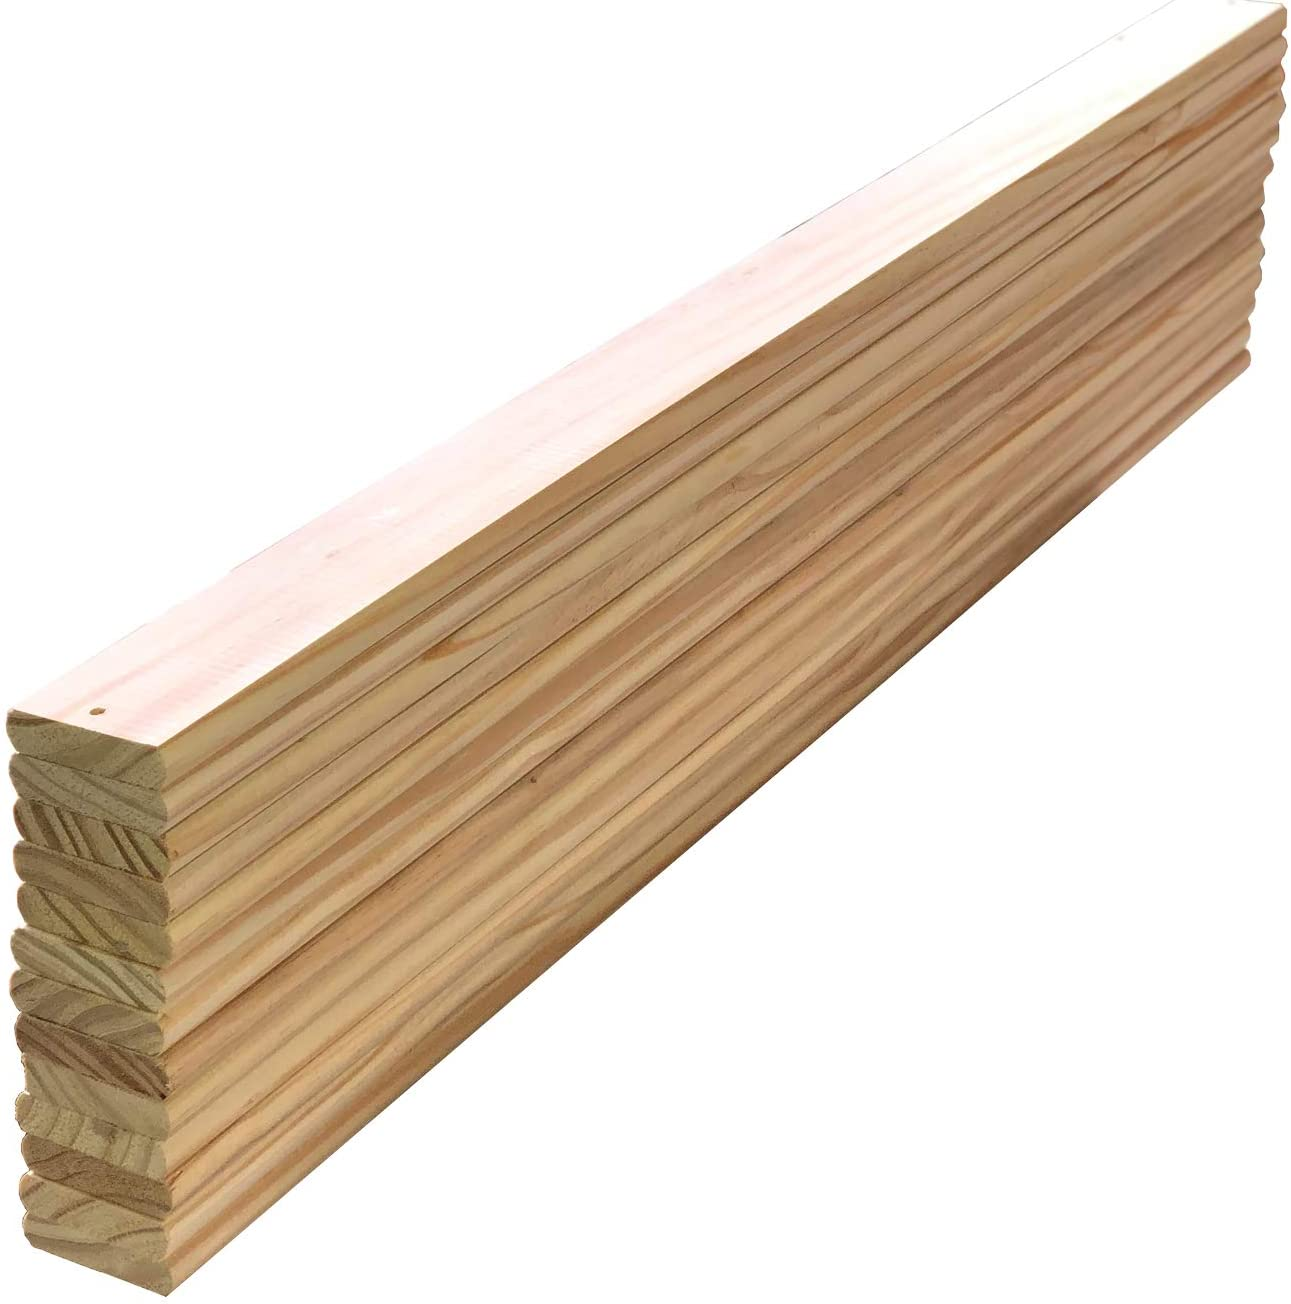 California King Size Bed Slats 71.87 inches Long (182.54 cm) x 2.75 inches Solid Pine Wood Wide Mattress Support Pack of 13 Count Replacement Spare Parts Custom Size Cutting Service (King, 71.87)